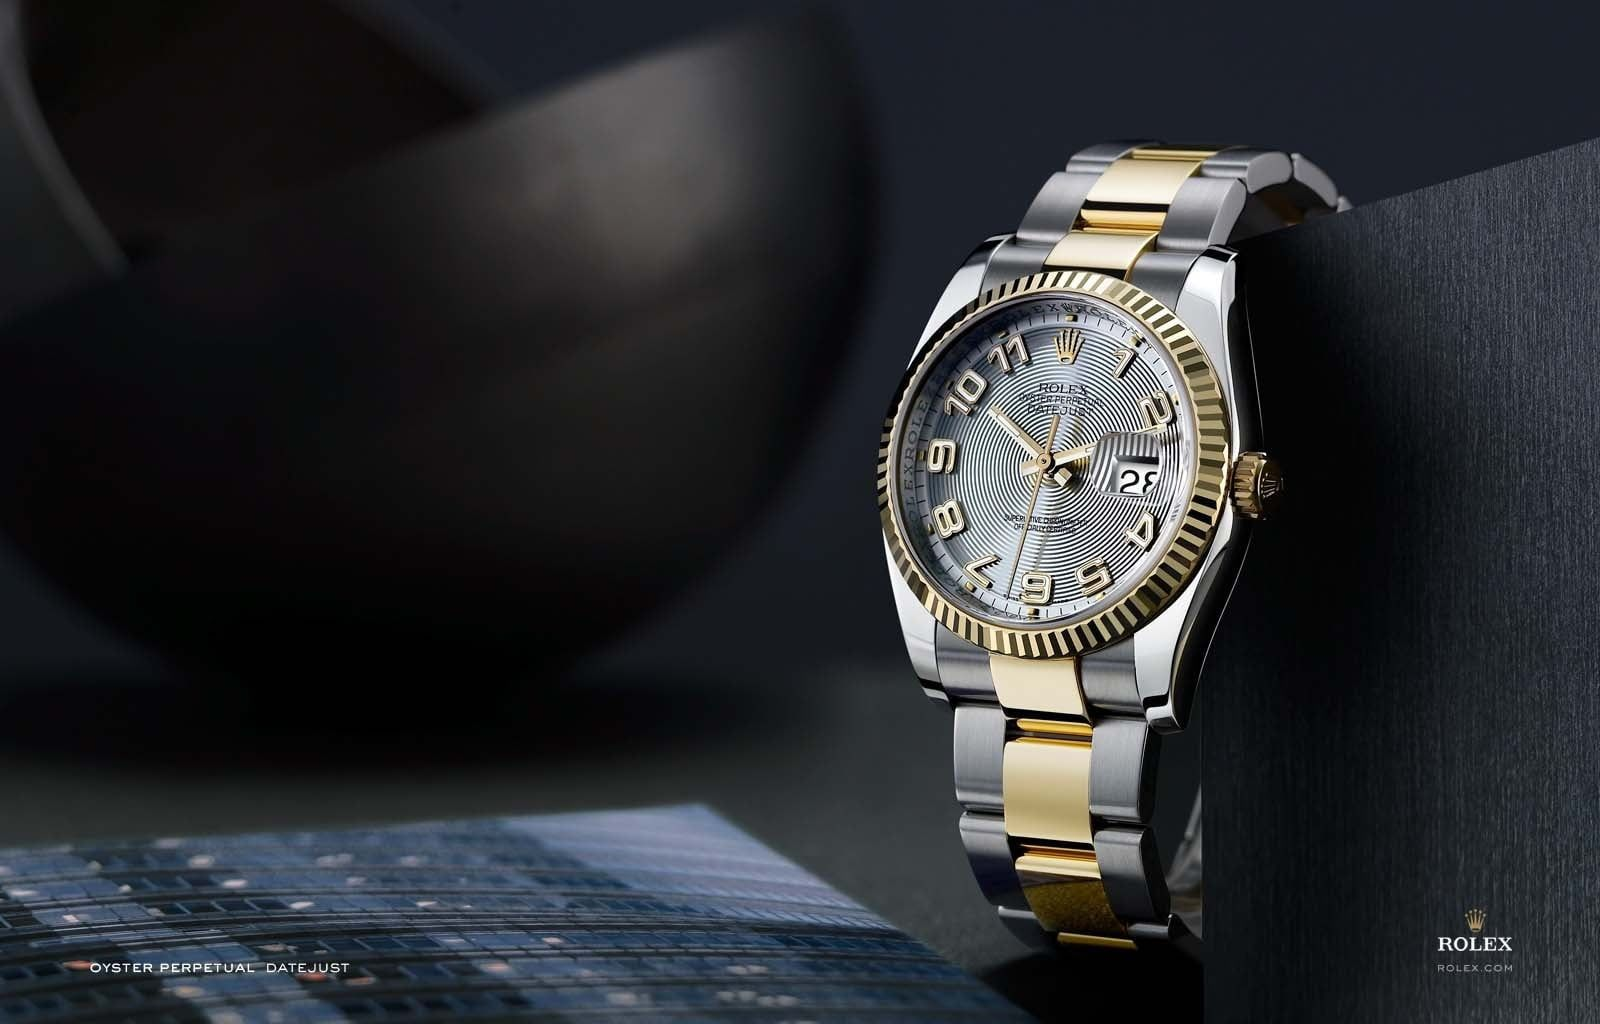 Rolex HD iPhone Wallpapers - Top Free Rolex HD iPhone ...